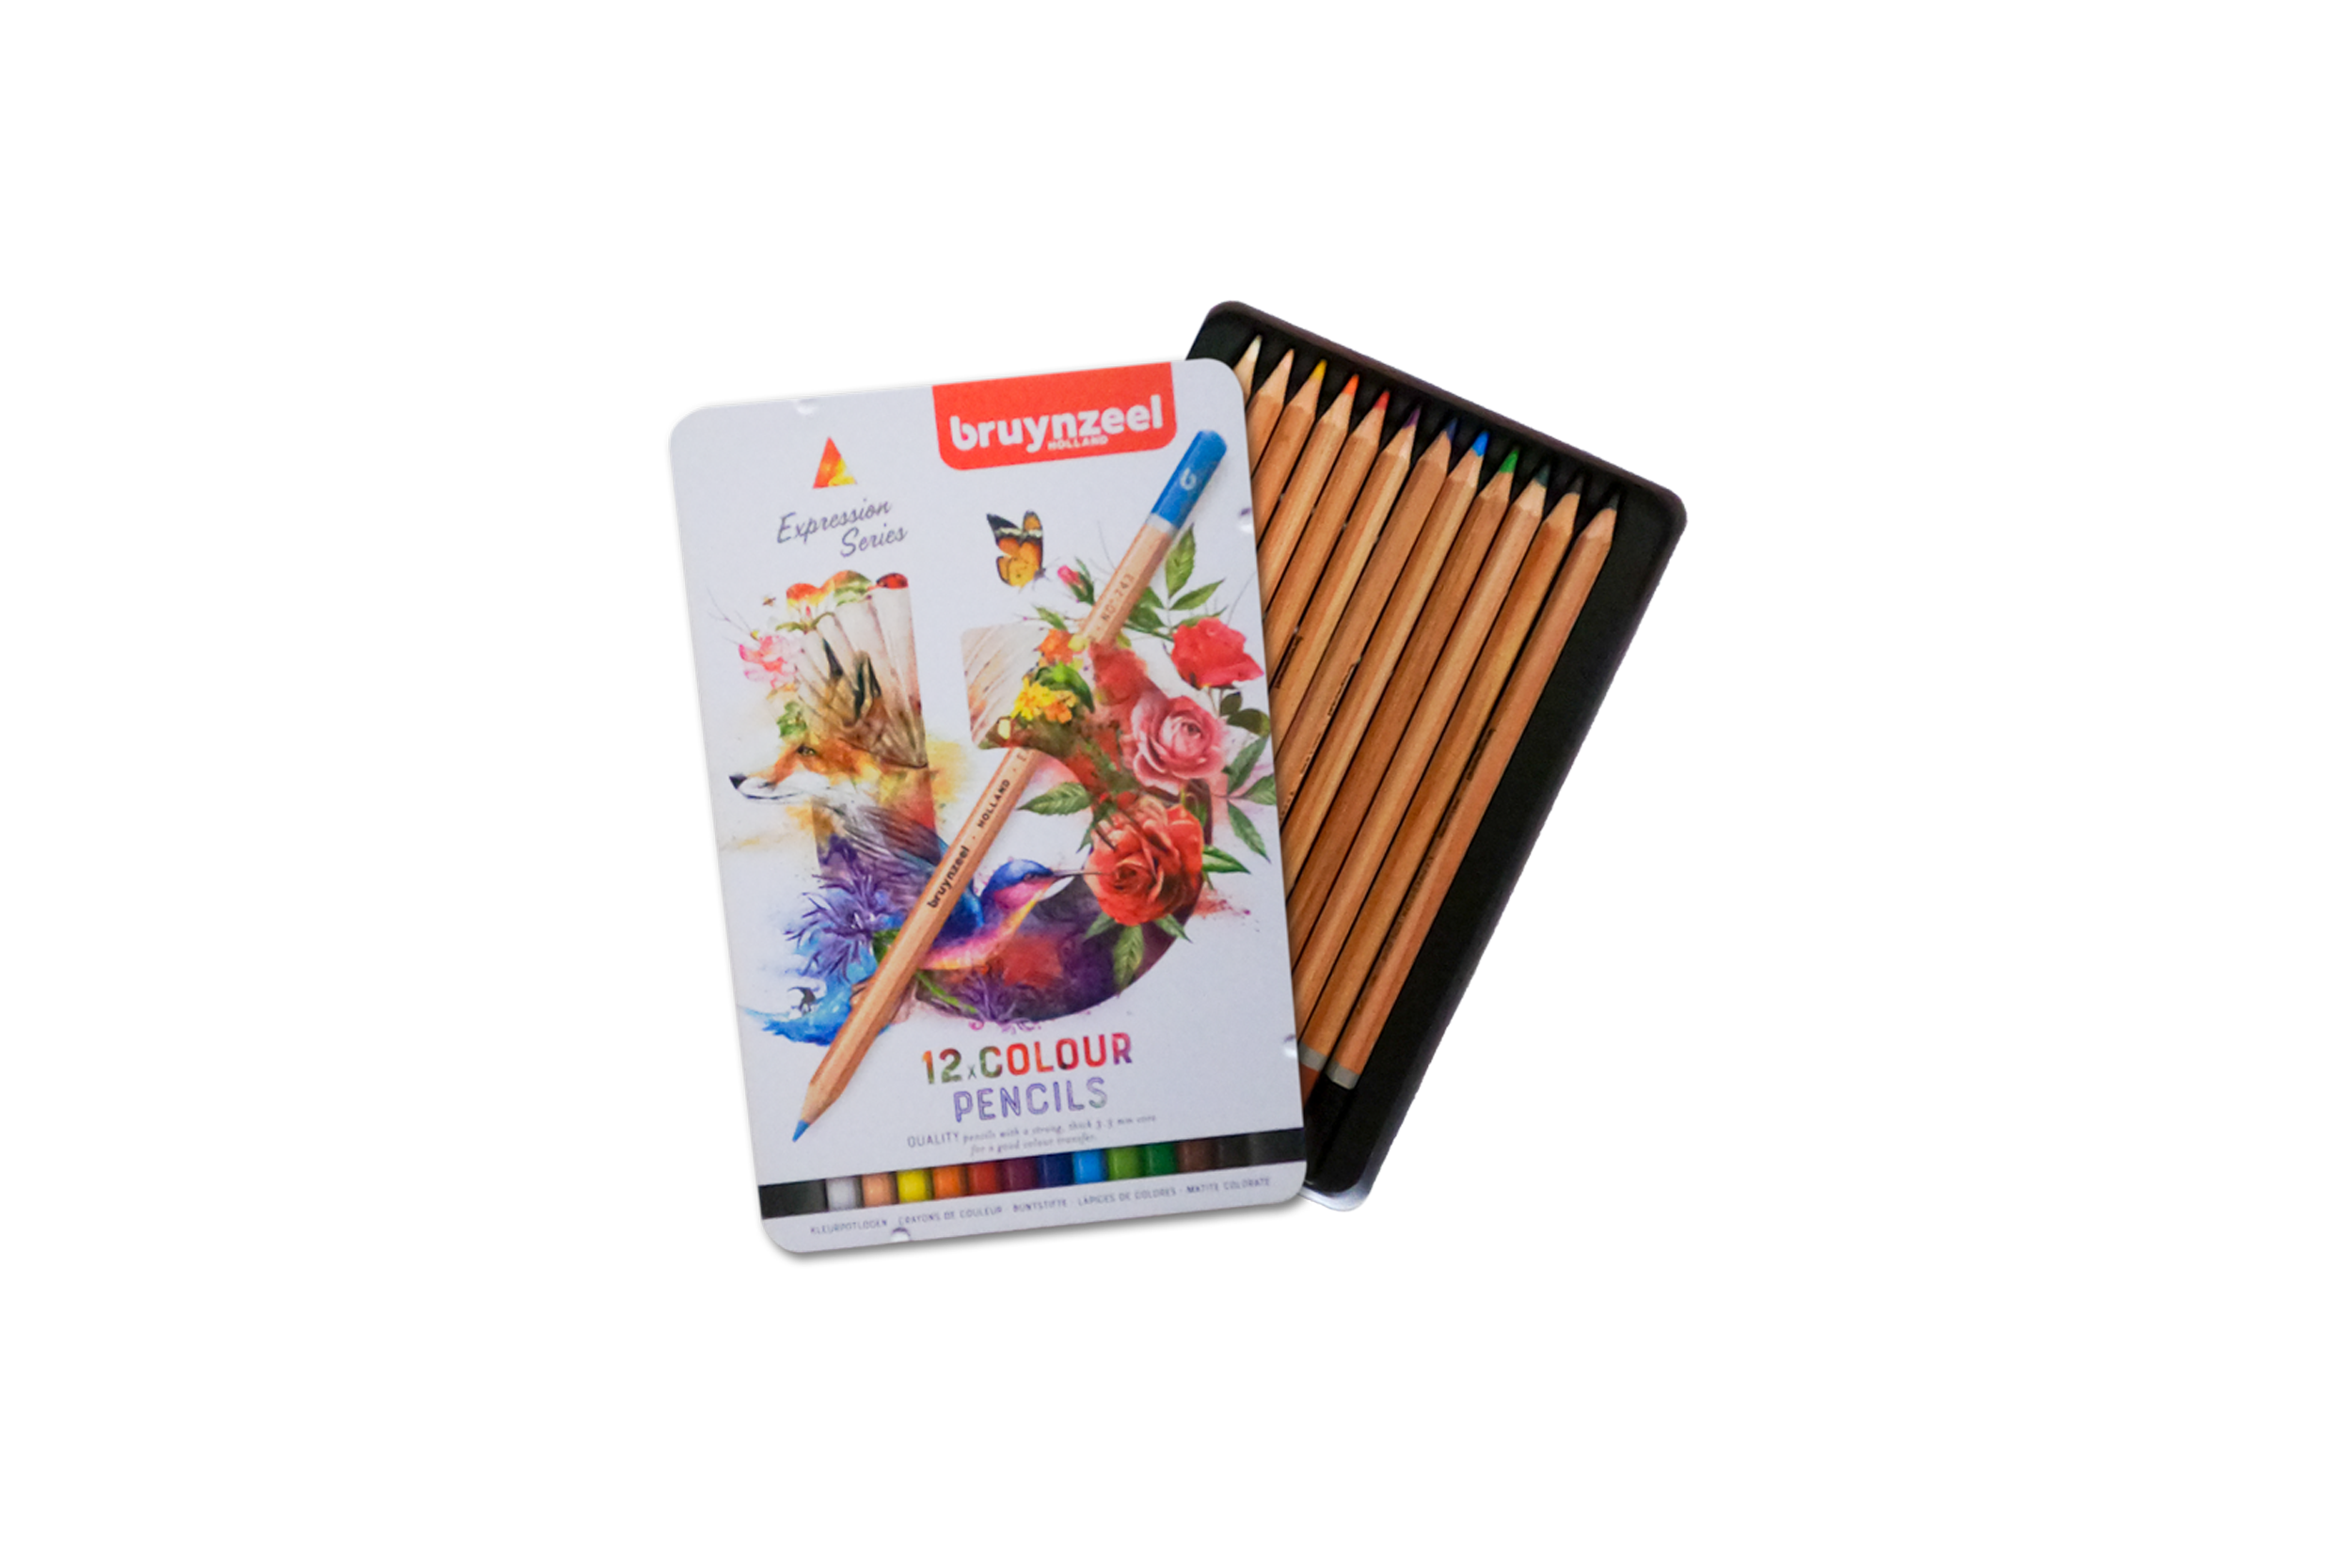 BRUYNZEEL EXPRESSION COLORED PENCIL SET